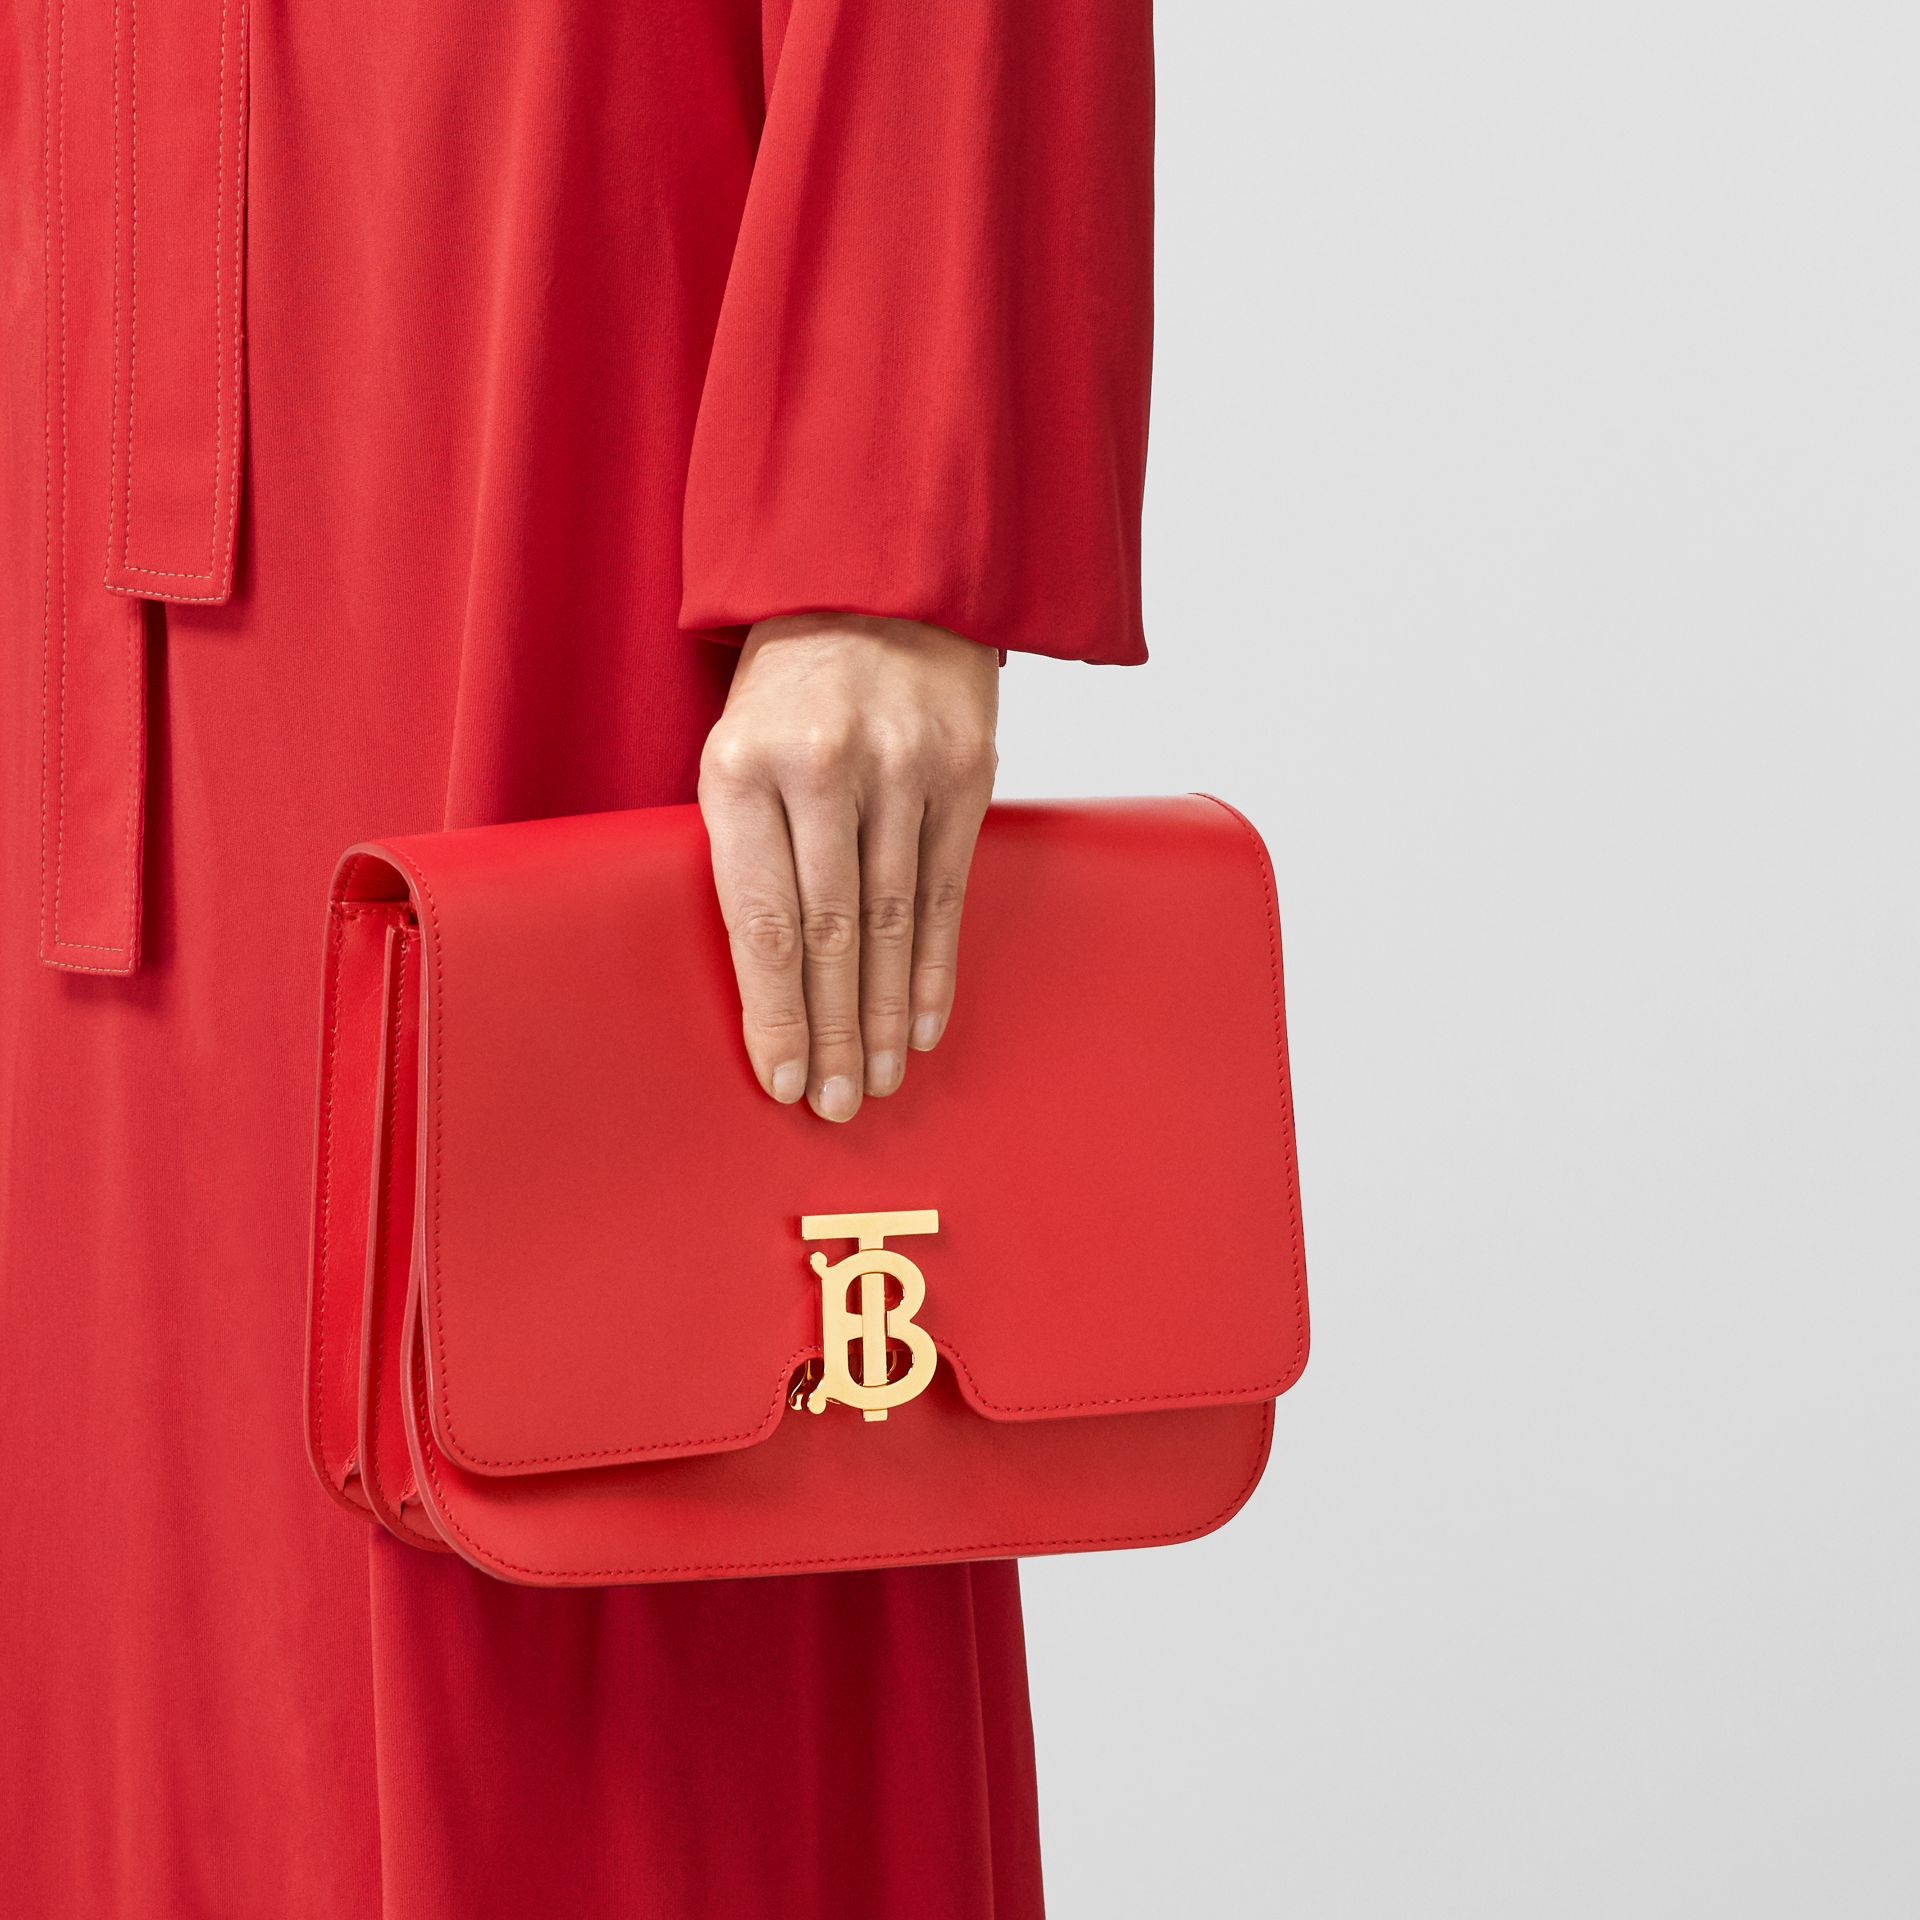 Medium Leather TB Bag in Bright Red - Women | Burberry United States - gallery image 8